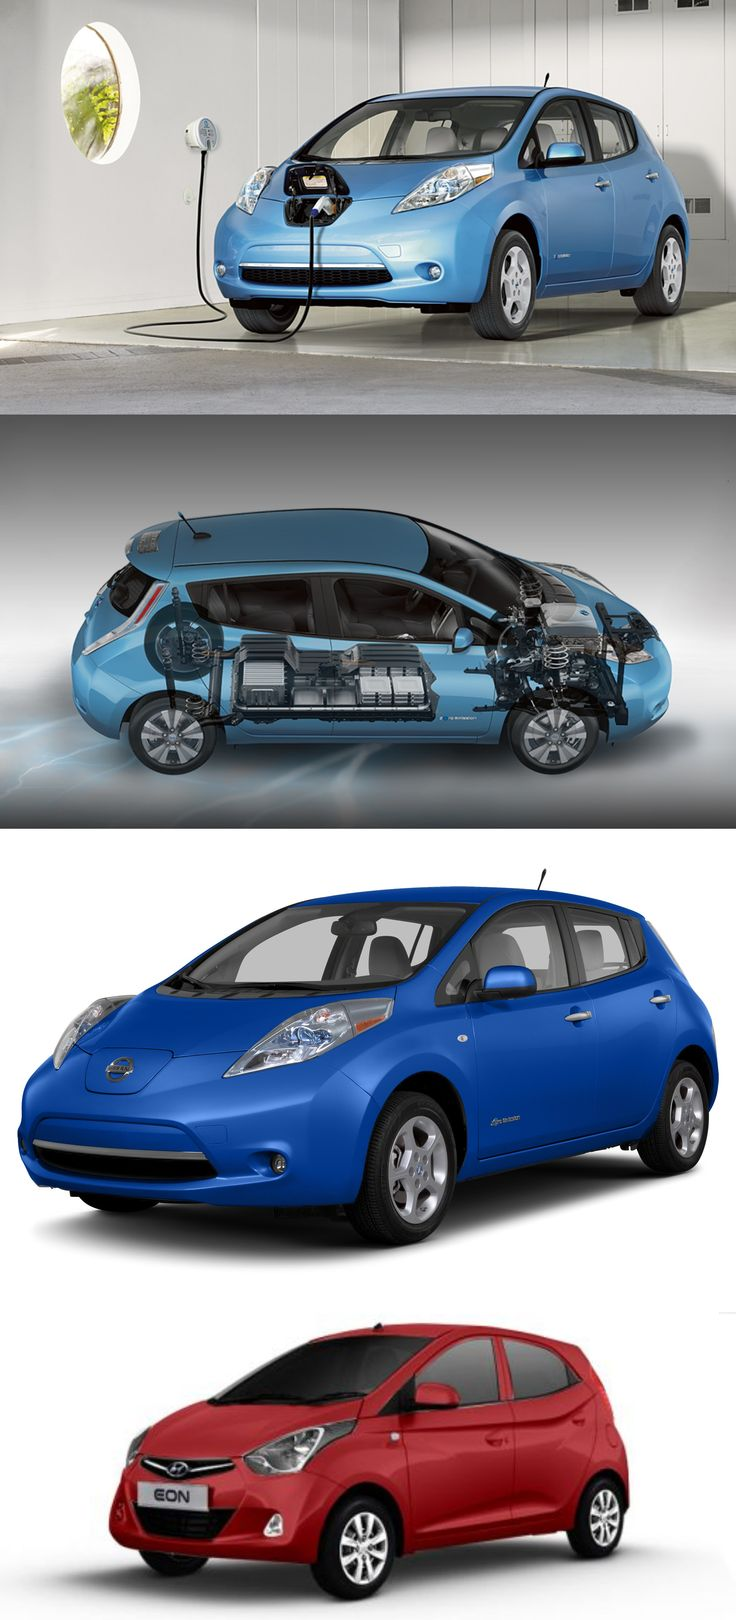 #Nissan Leaf to Arrive #electric #car in #India Soon